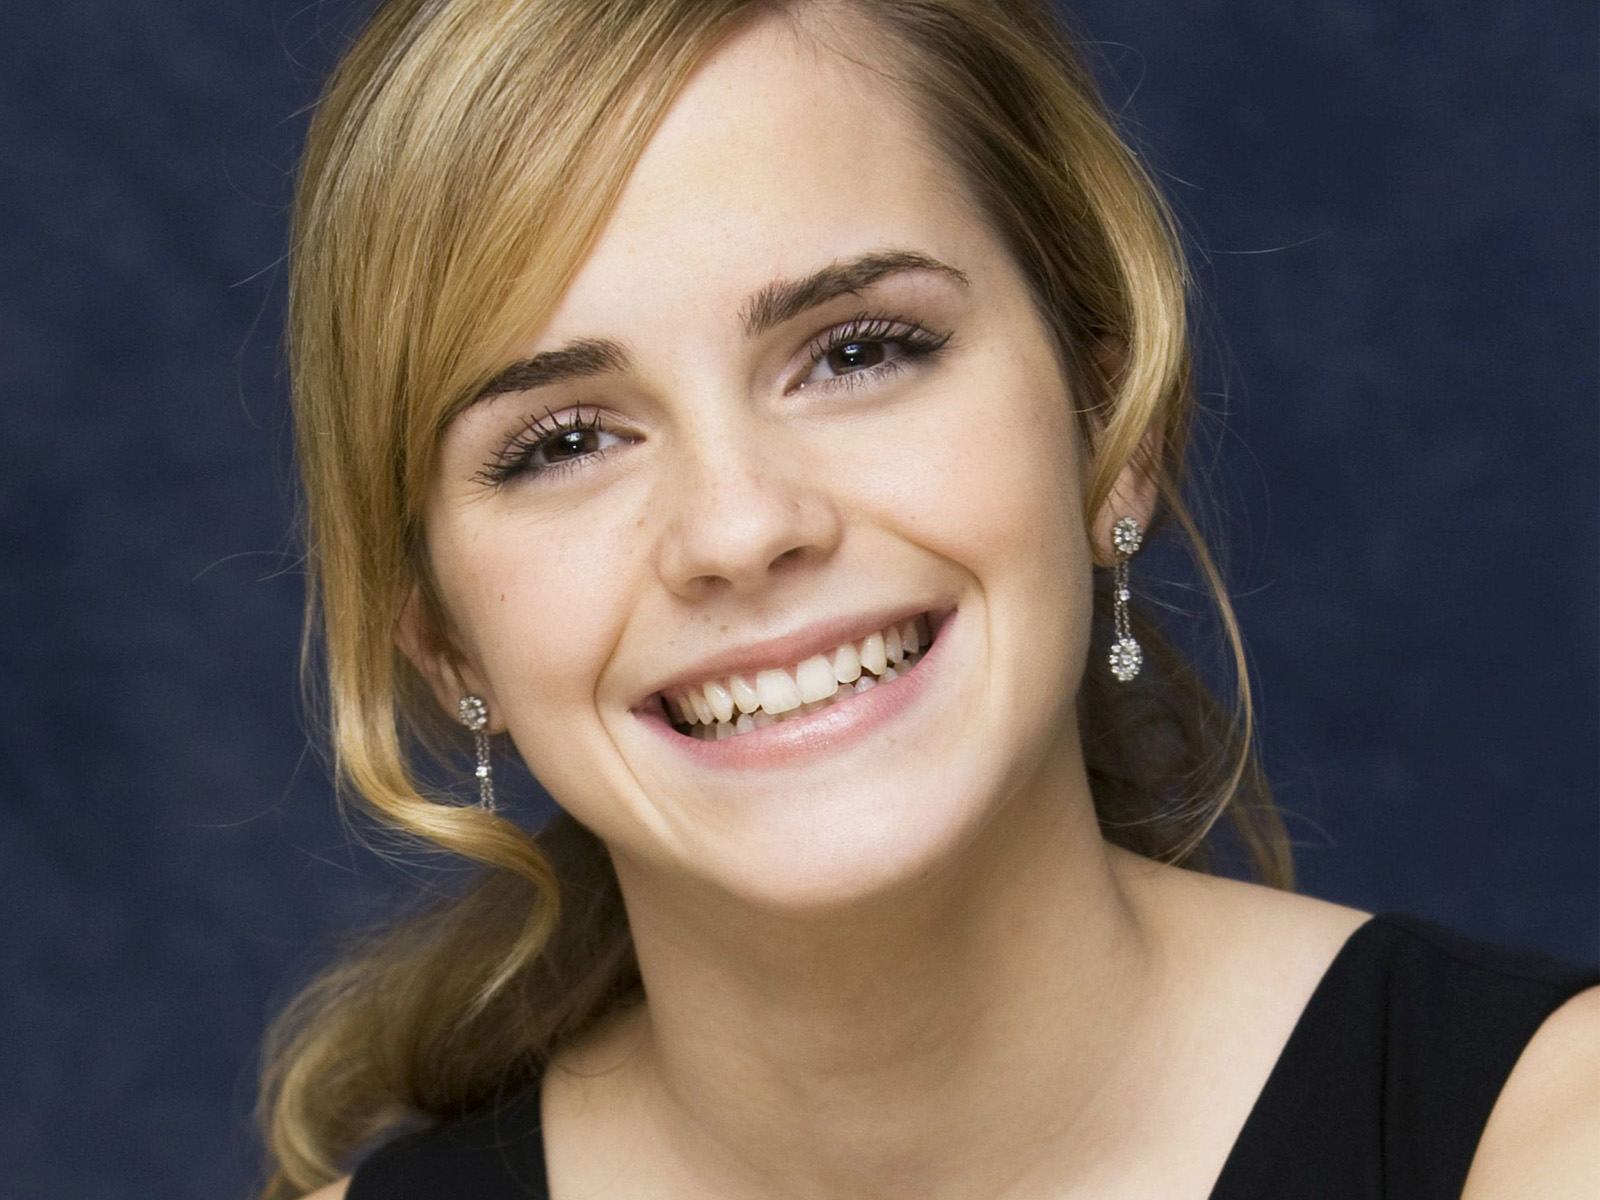 Emma Watson Beautiful Smile High Quality 339.88 Kb